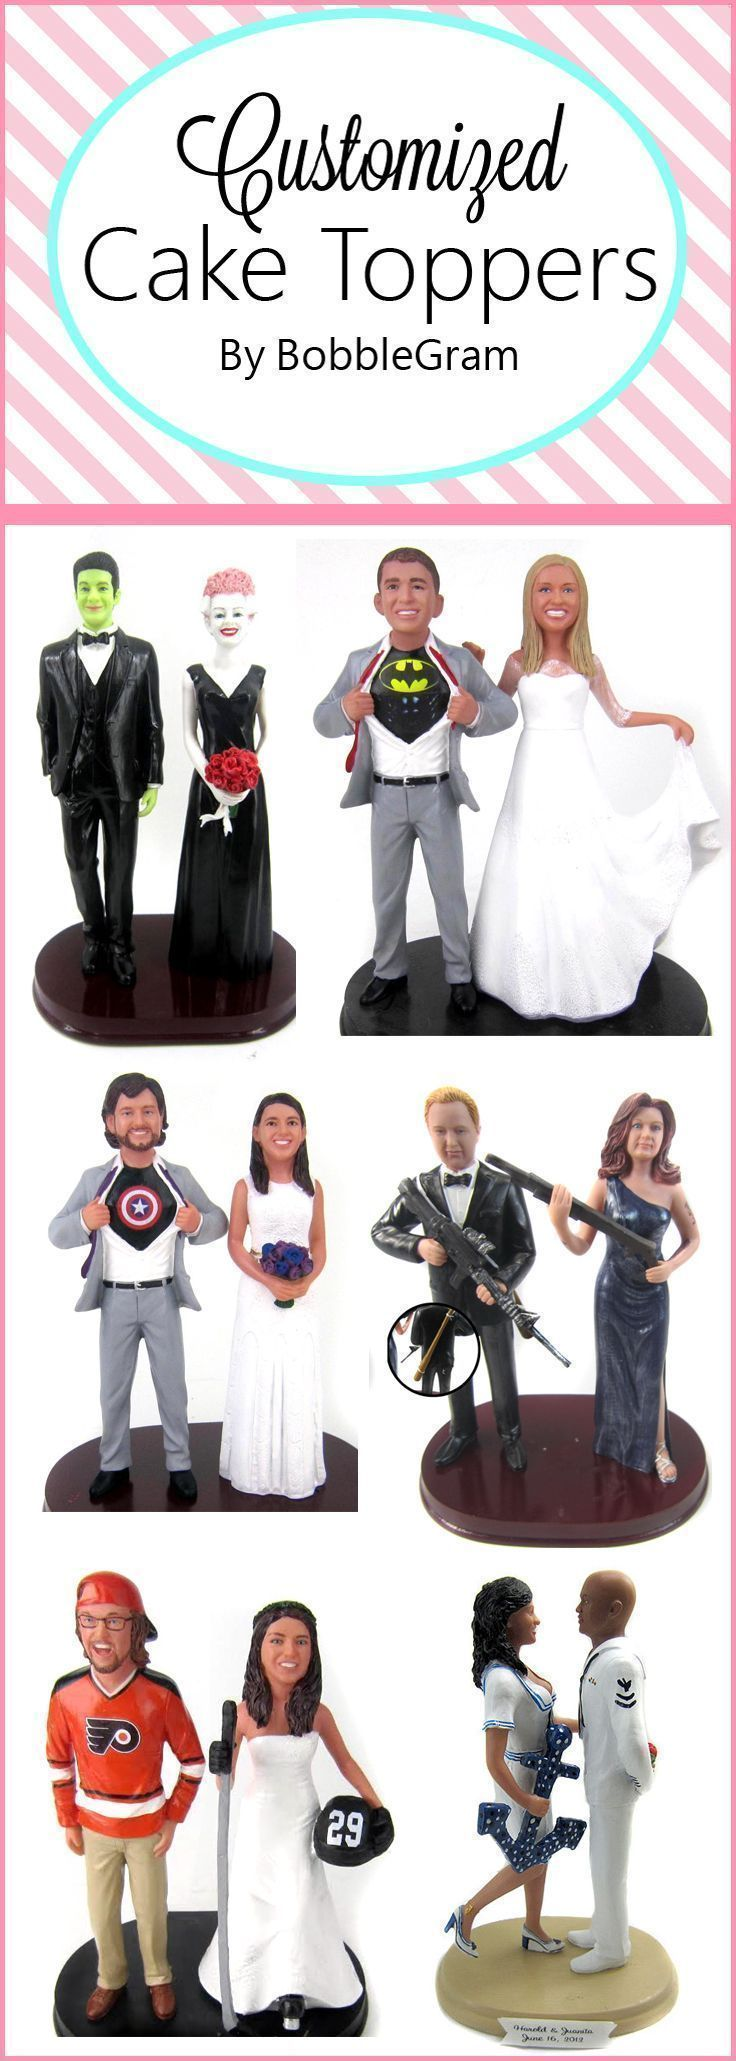 Personalized wedding cake toppers are custom sculpted to look like the bride and groom.  Why order a super boring cake topper that you'll store away in a box?  Order a customized wedding cake topper that you will display and cherish forever.